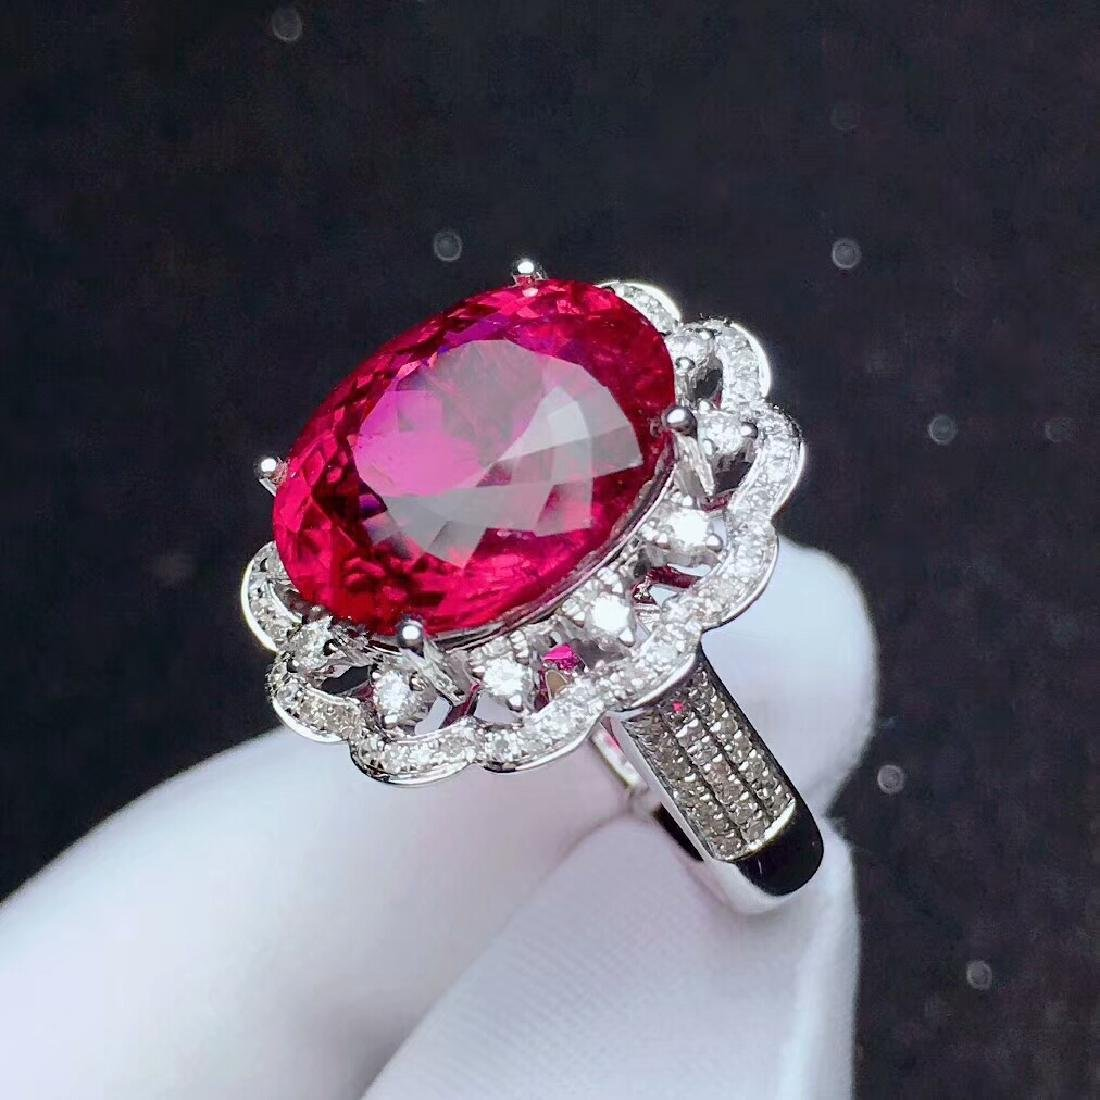 9.8ct Tourmaline Ring in 18kt White Gold - 5